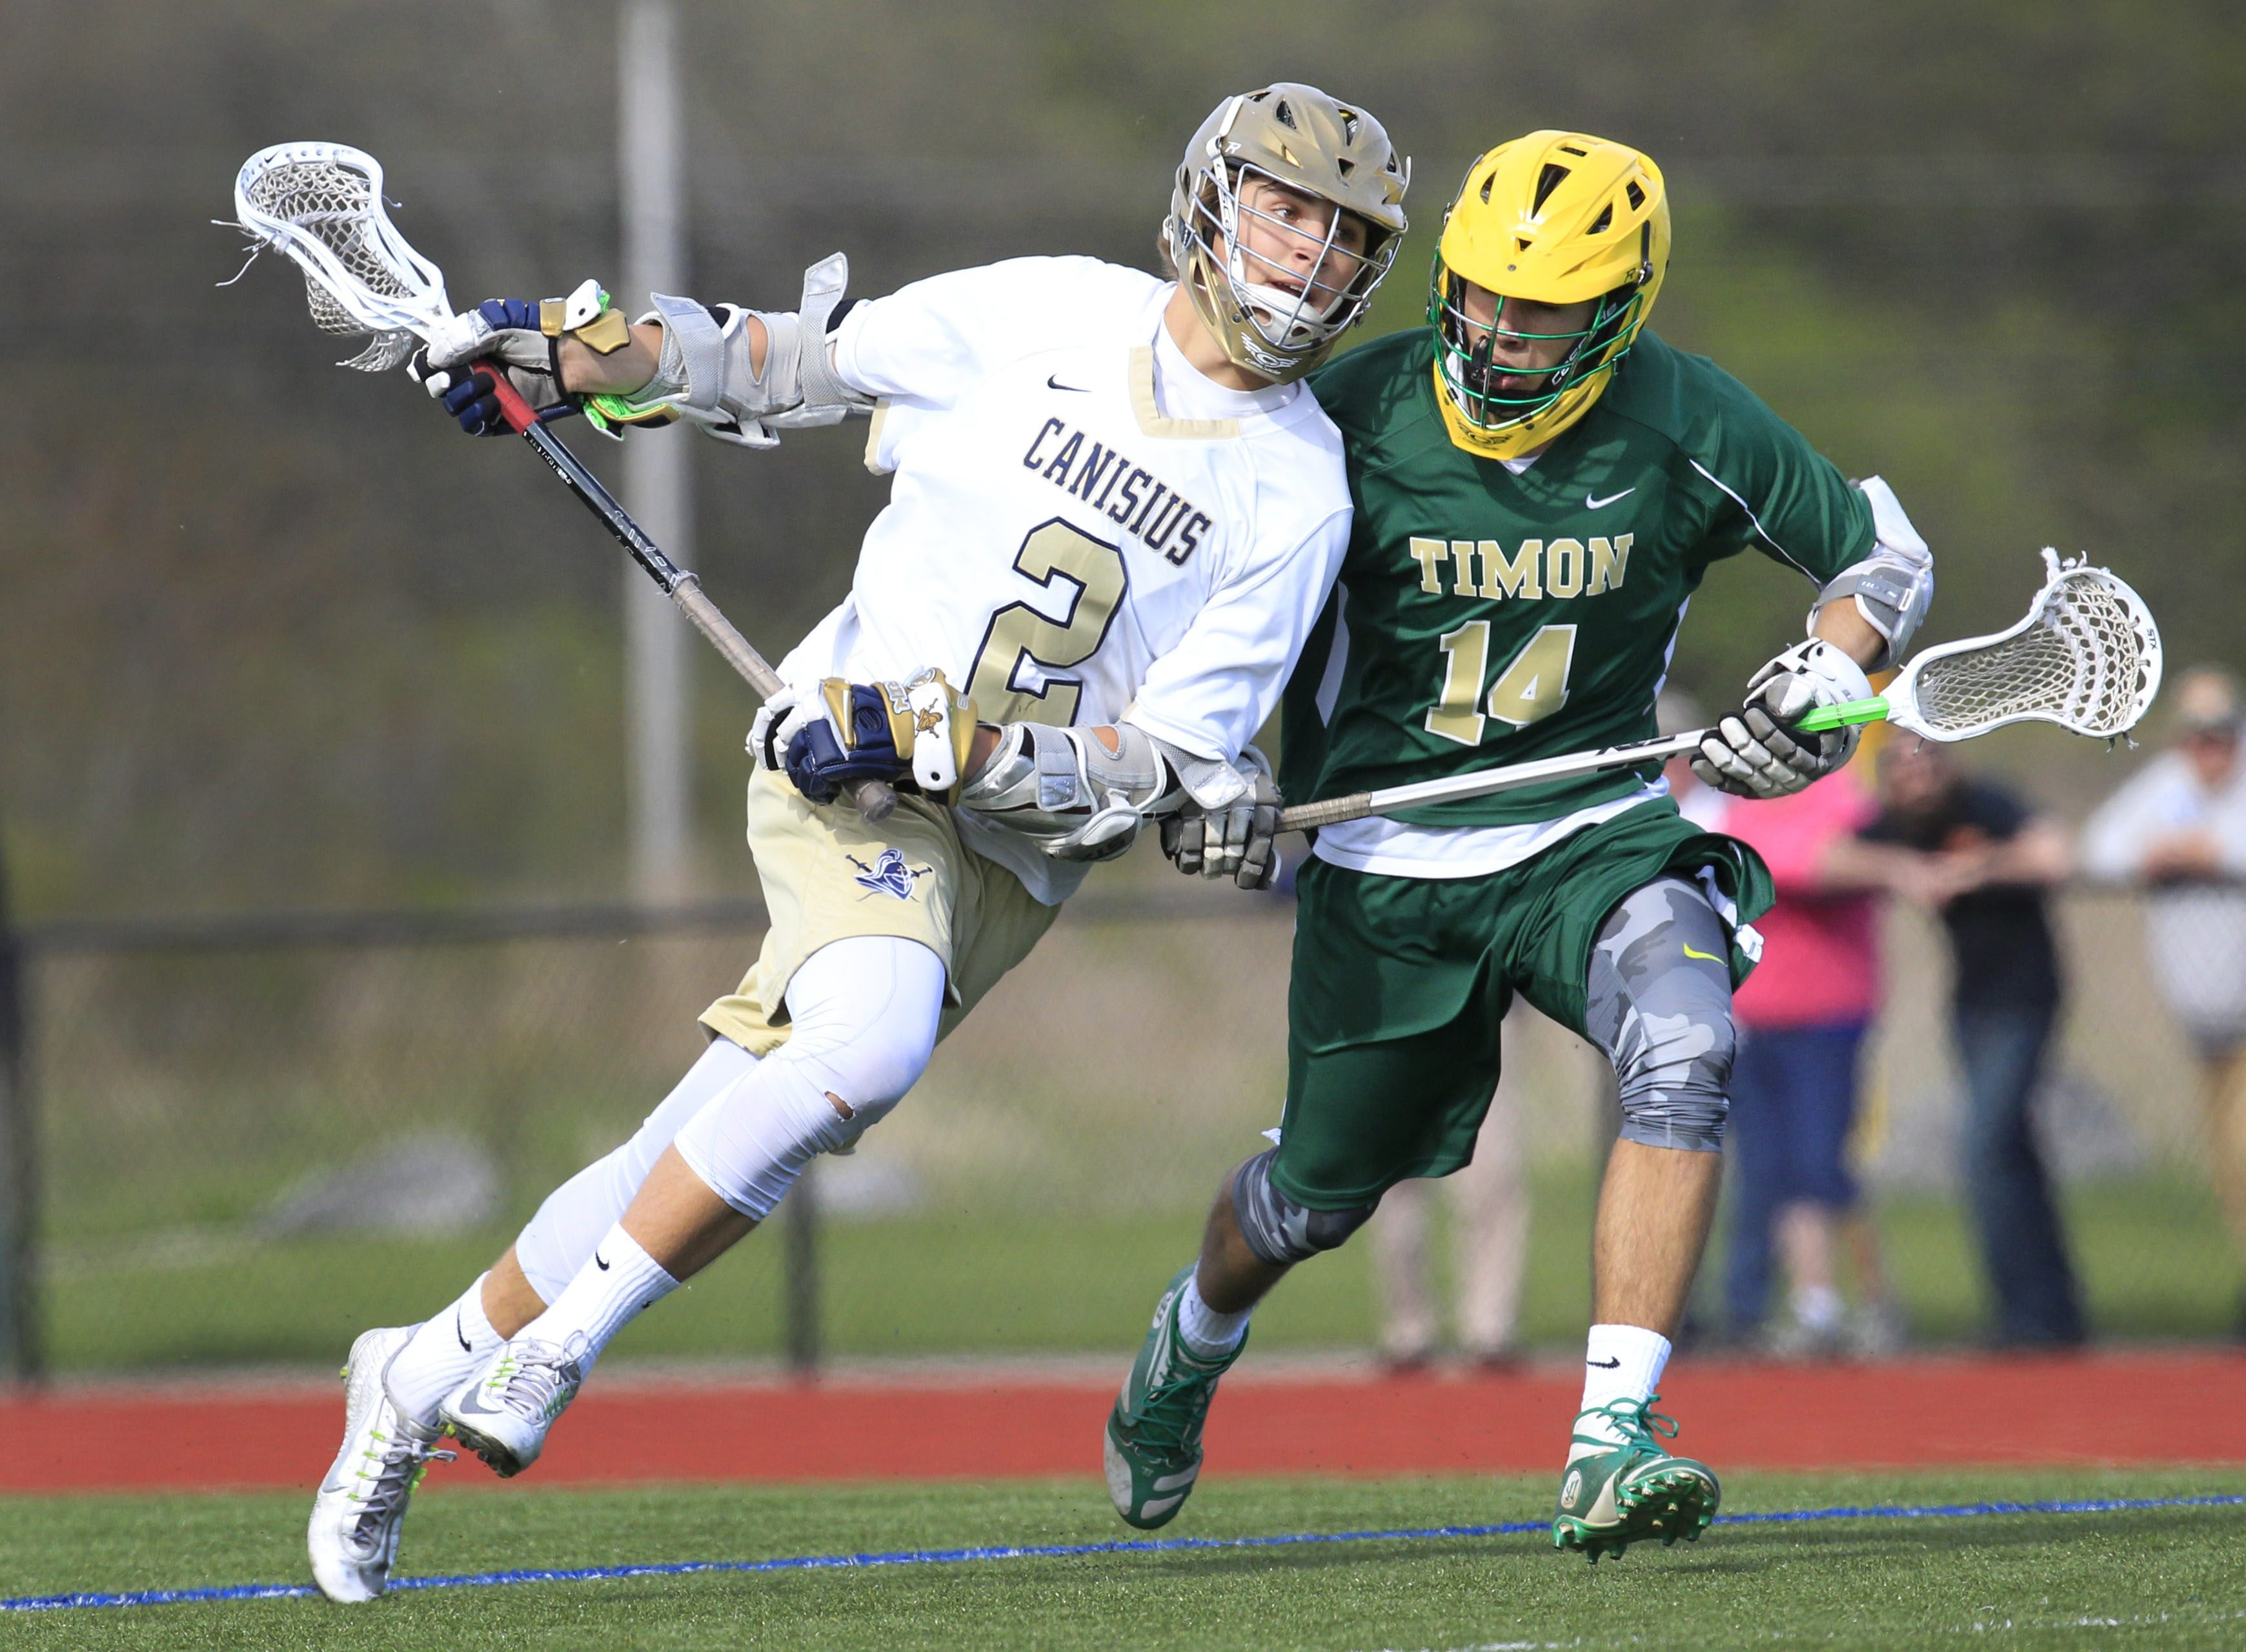 John Baldwin of Canisius moves the ball against Timon-St. Jude's Liam Grogan during the first half of the Crusaders' 14-7 victory Tuesday.